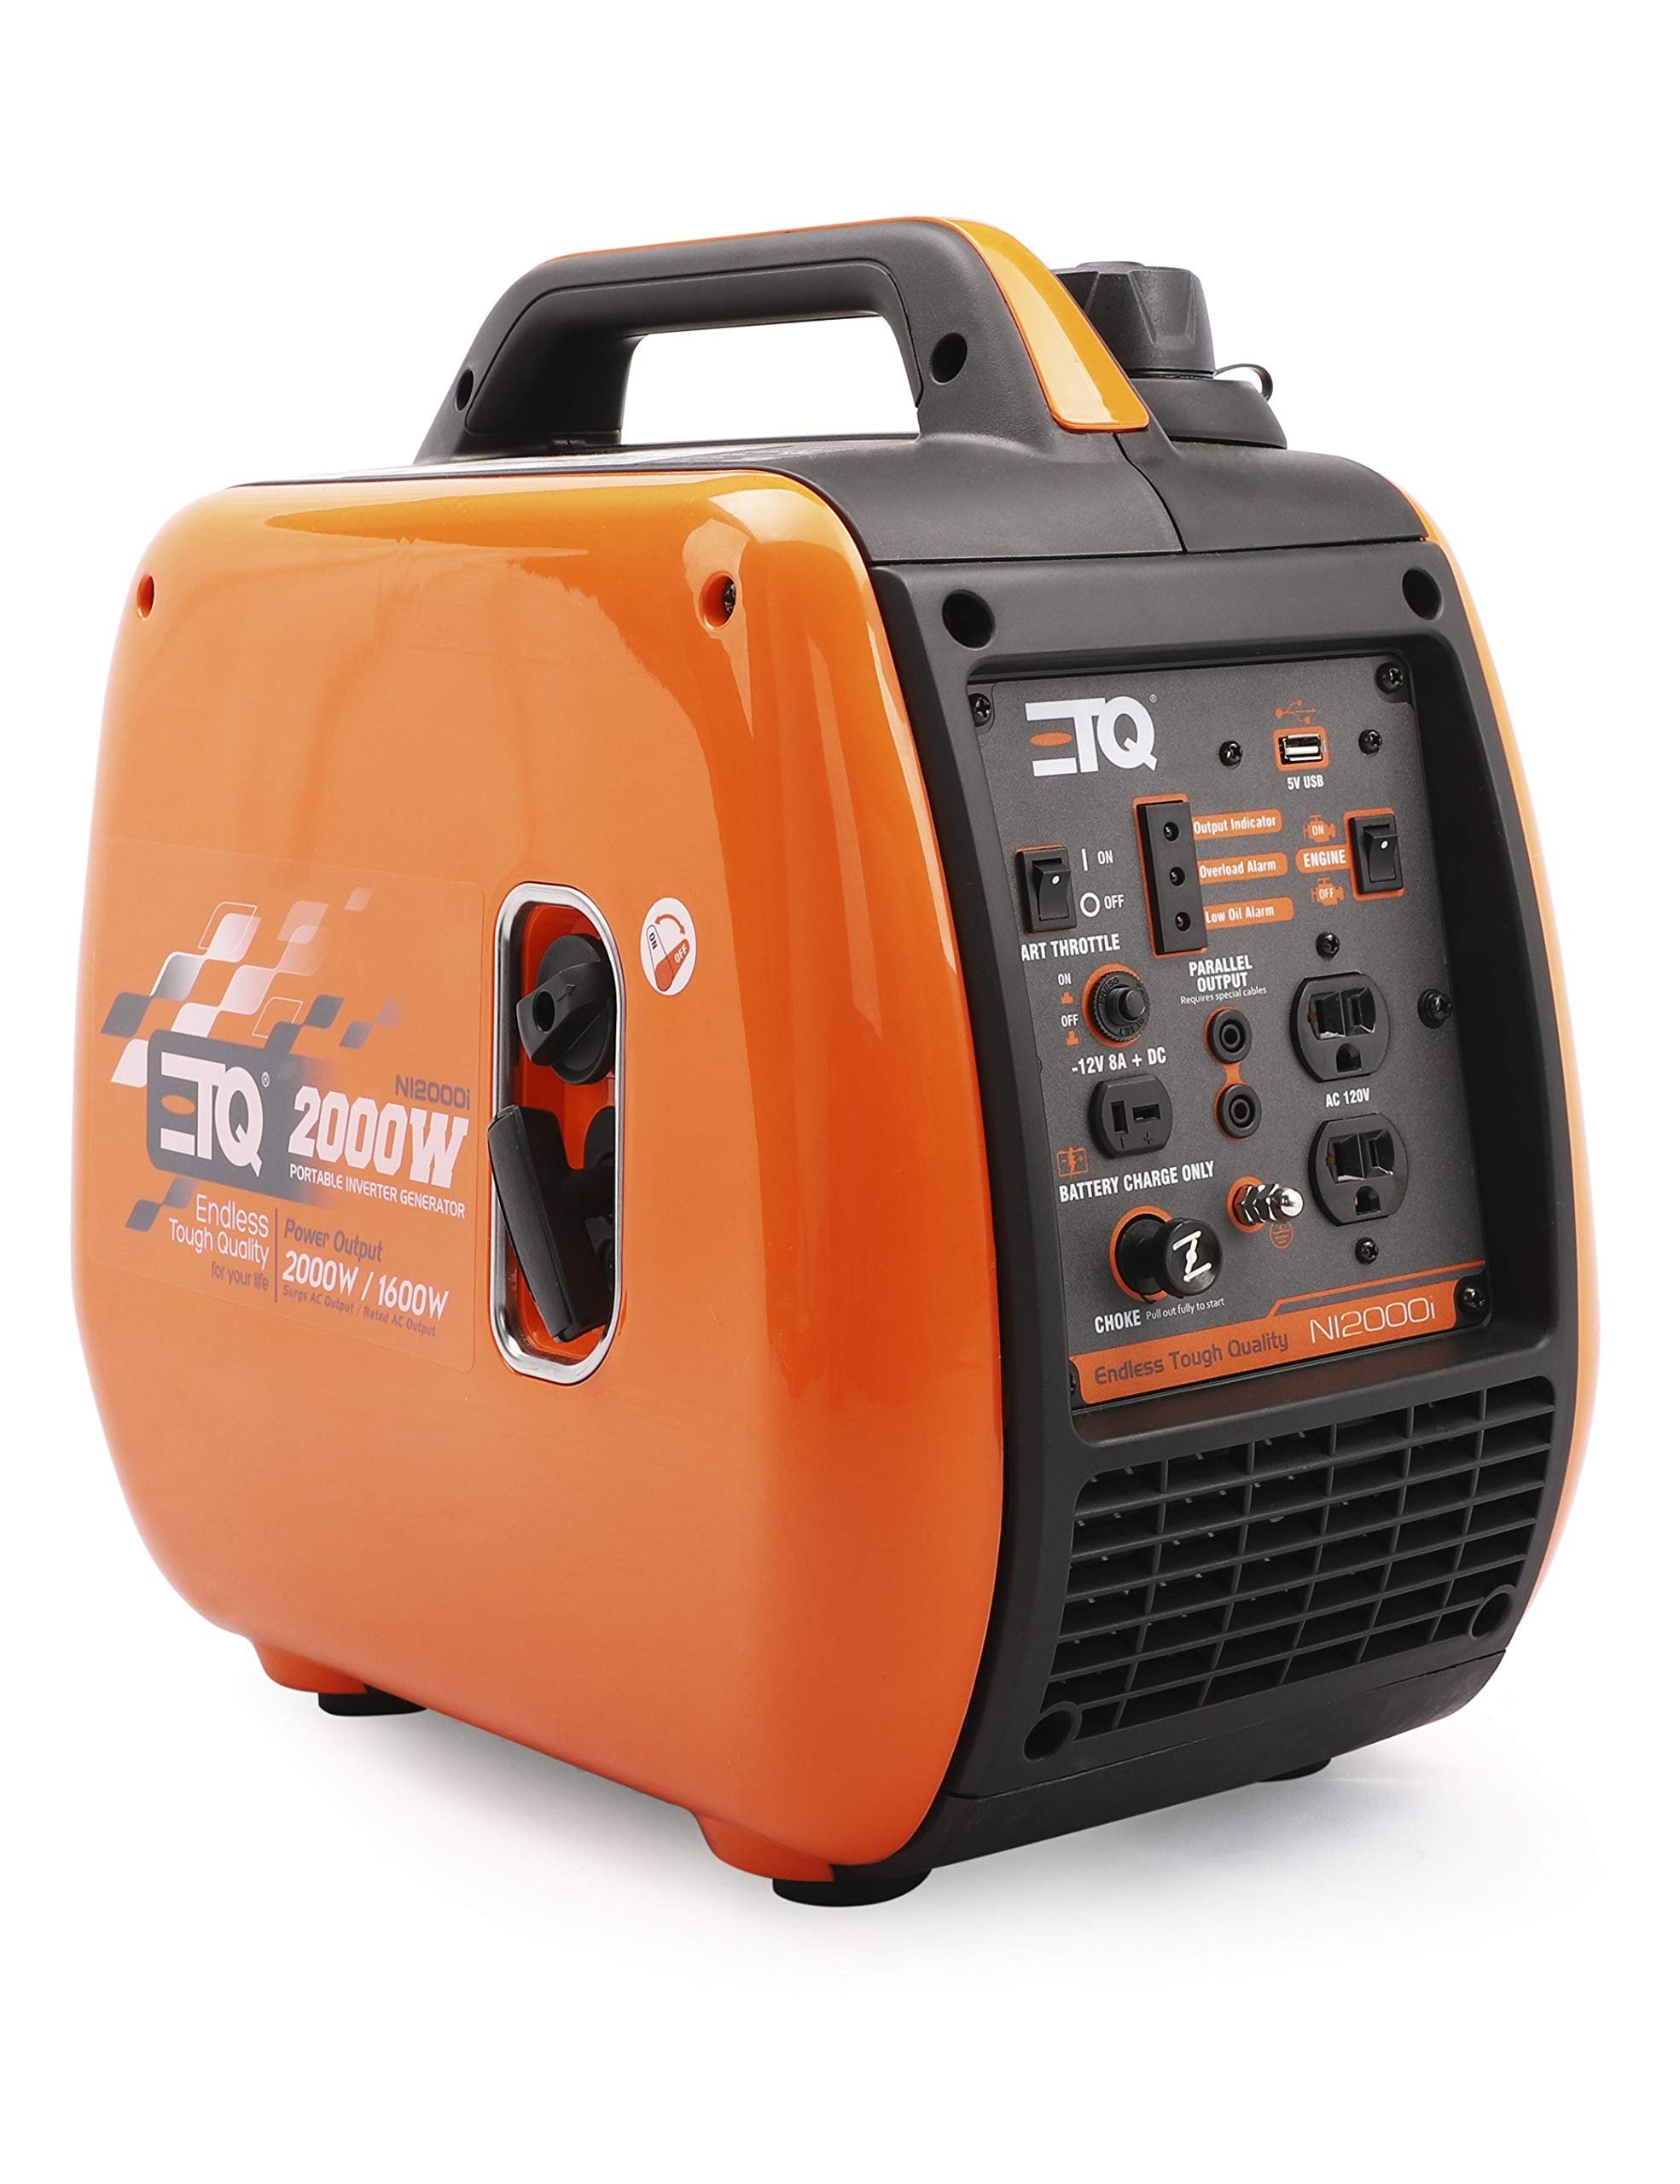 Etq NI2000i Tough Quality 2000-Watt Portable Gas Powered Inverter Generator, Extremely Quiet- CARB Compliant by Etq